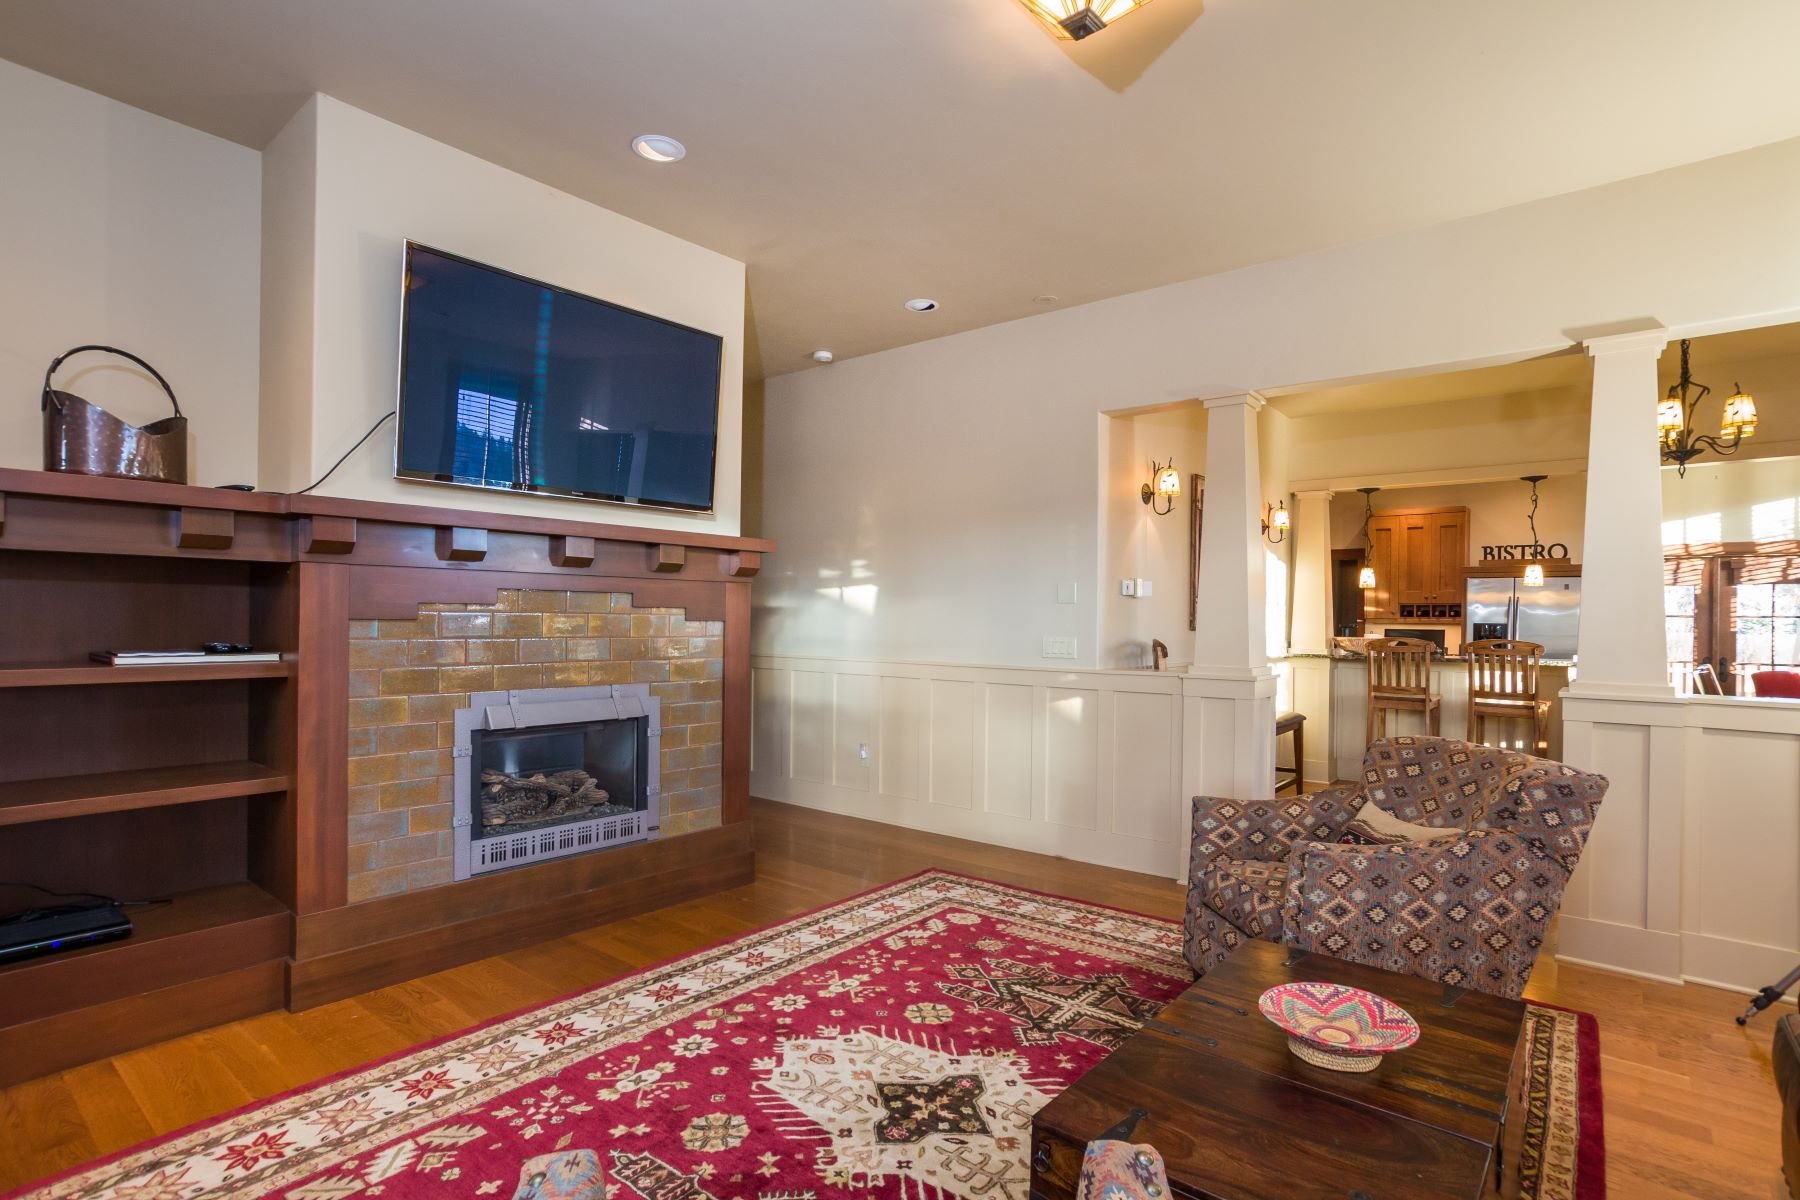 Additional photo for property listing at 5075 Portage Way , Whitefish, MT 59937 5075  Portage Way Whitefish, Montana 59937 United States